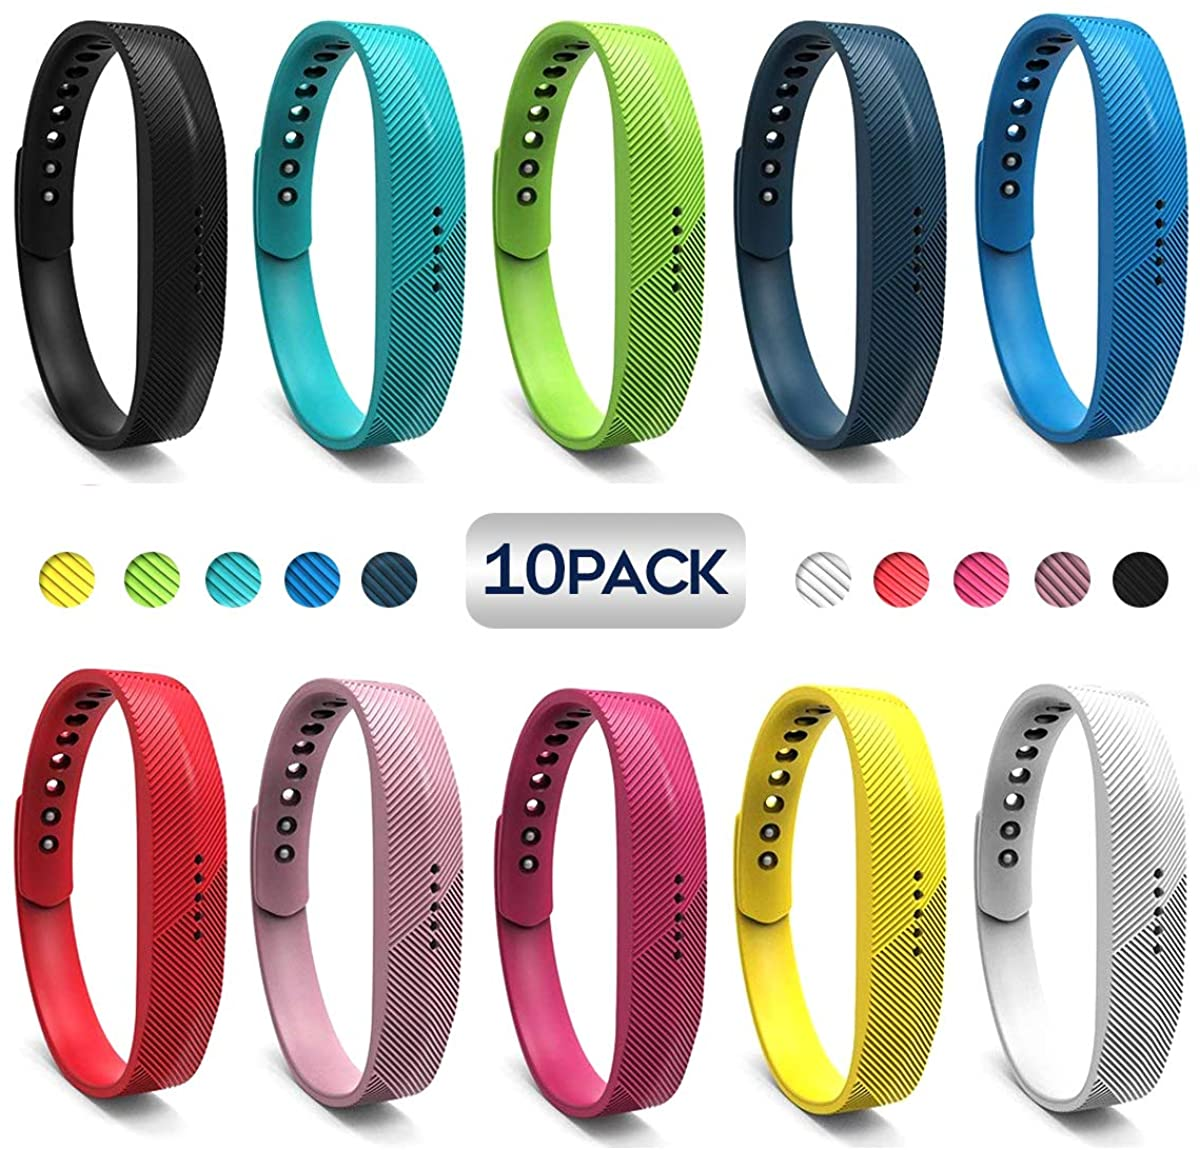 JOMOQ Replacement Bands Compatible for Fitbit Flex 2, Adjustable Breathable Sport Wristbands Silicone Accessories Women Men